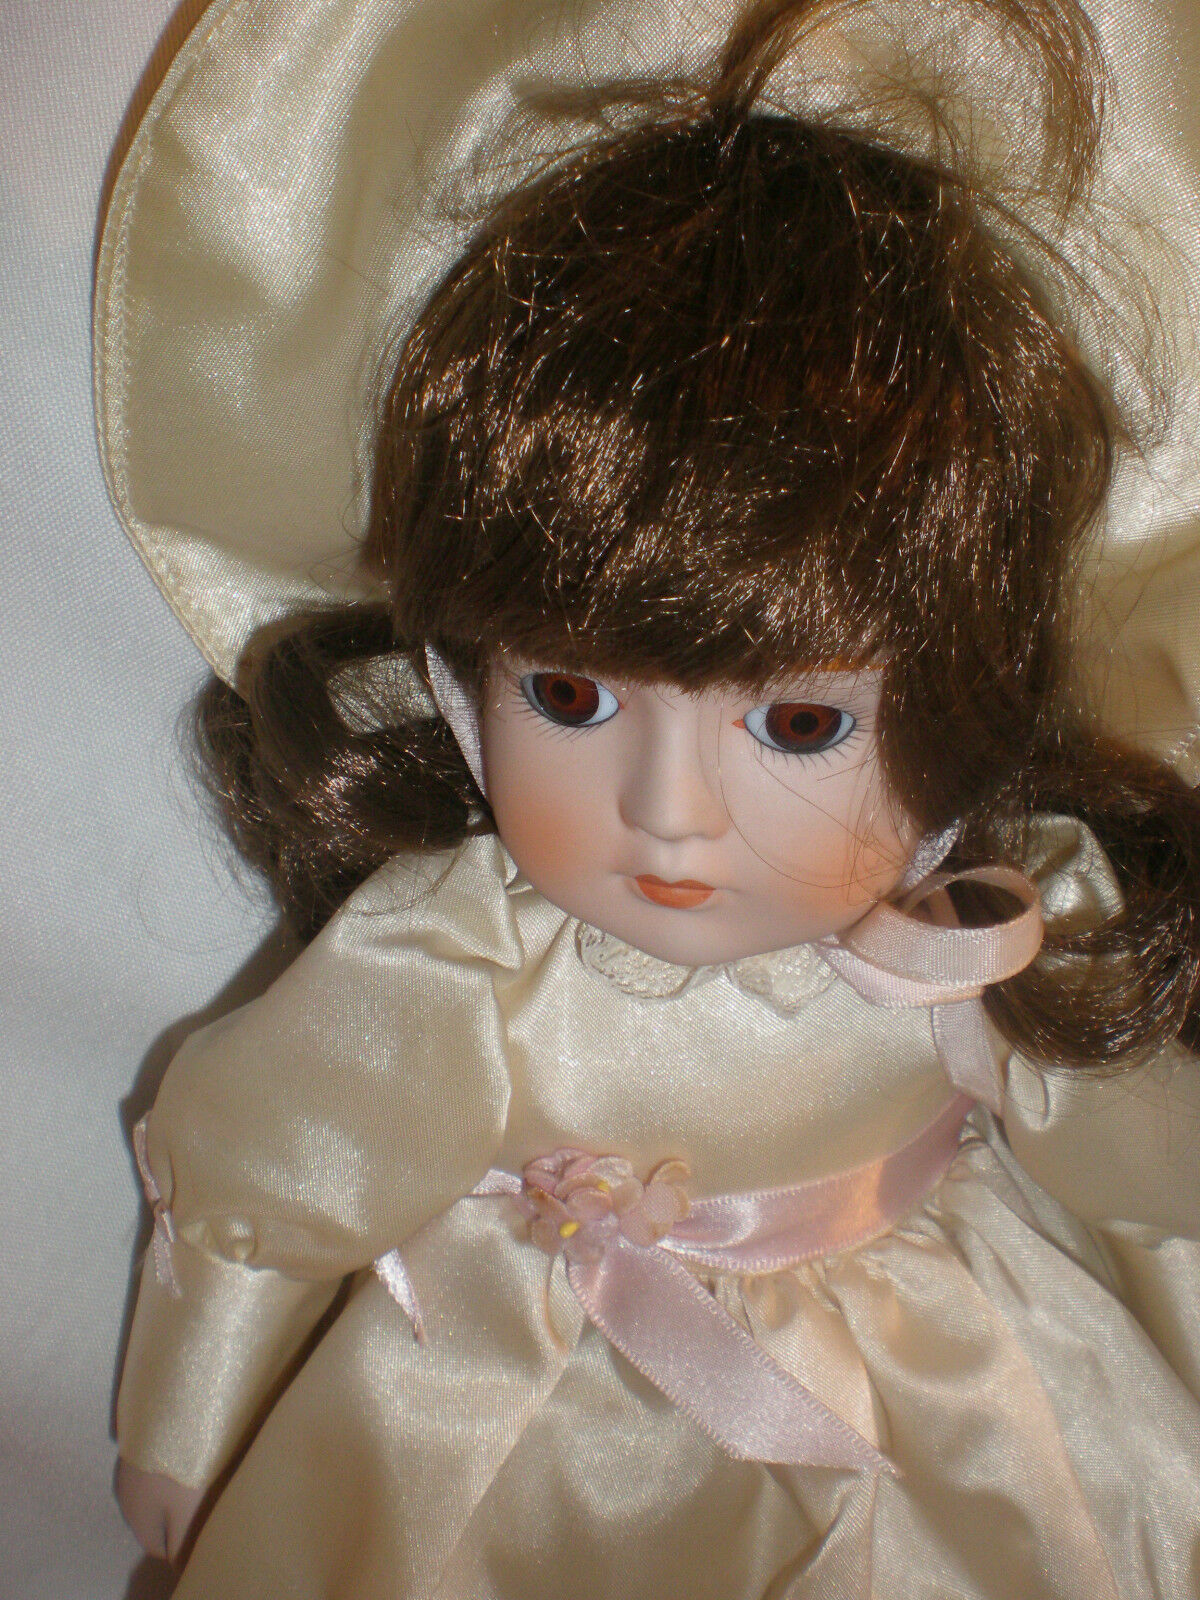 Gorham Rebecca Musical Porcelain Doll box VT639 1984 new without box Doll 6c6a62